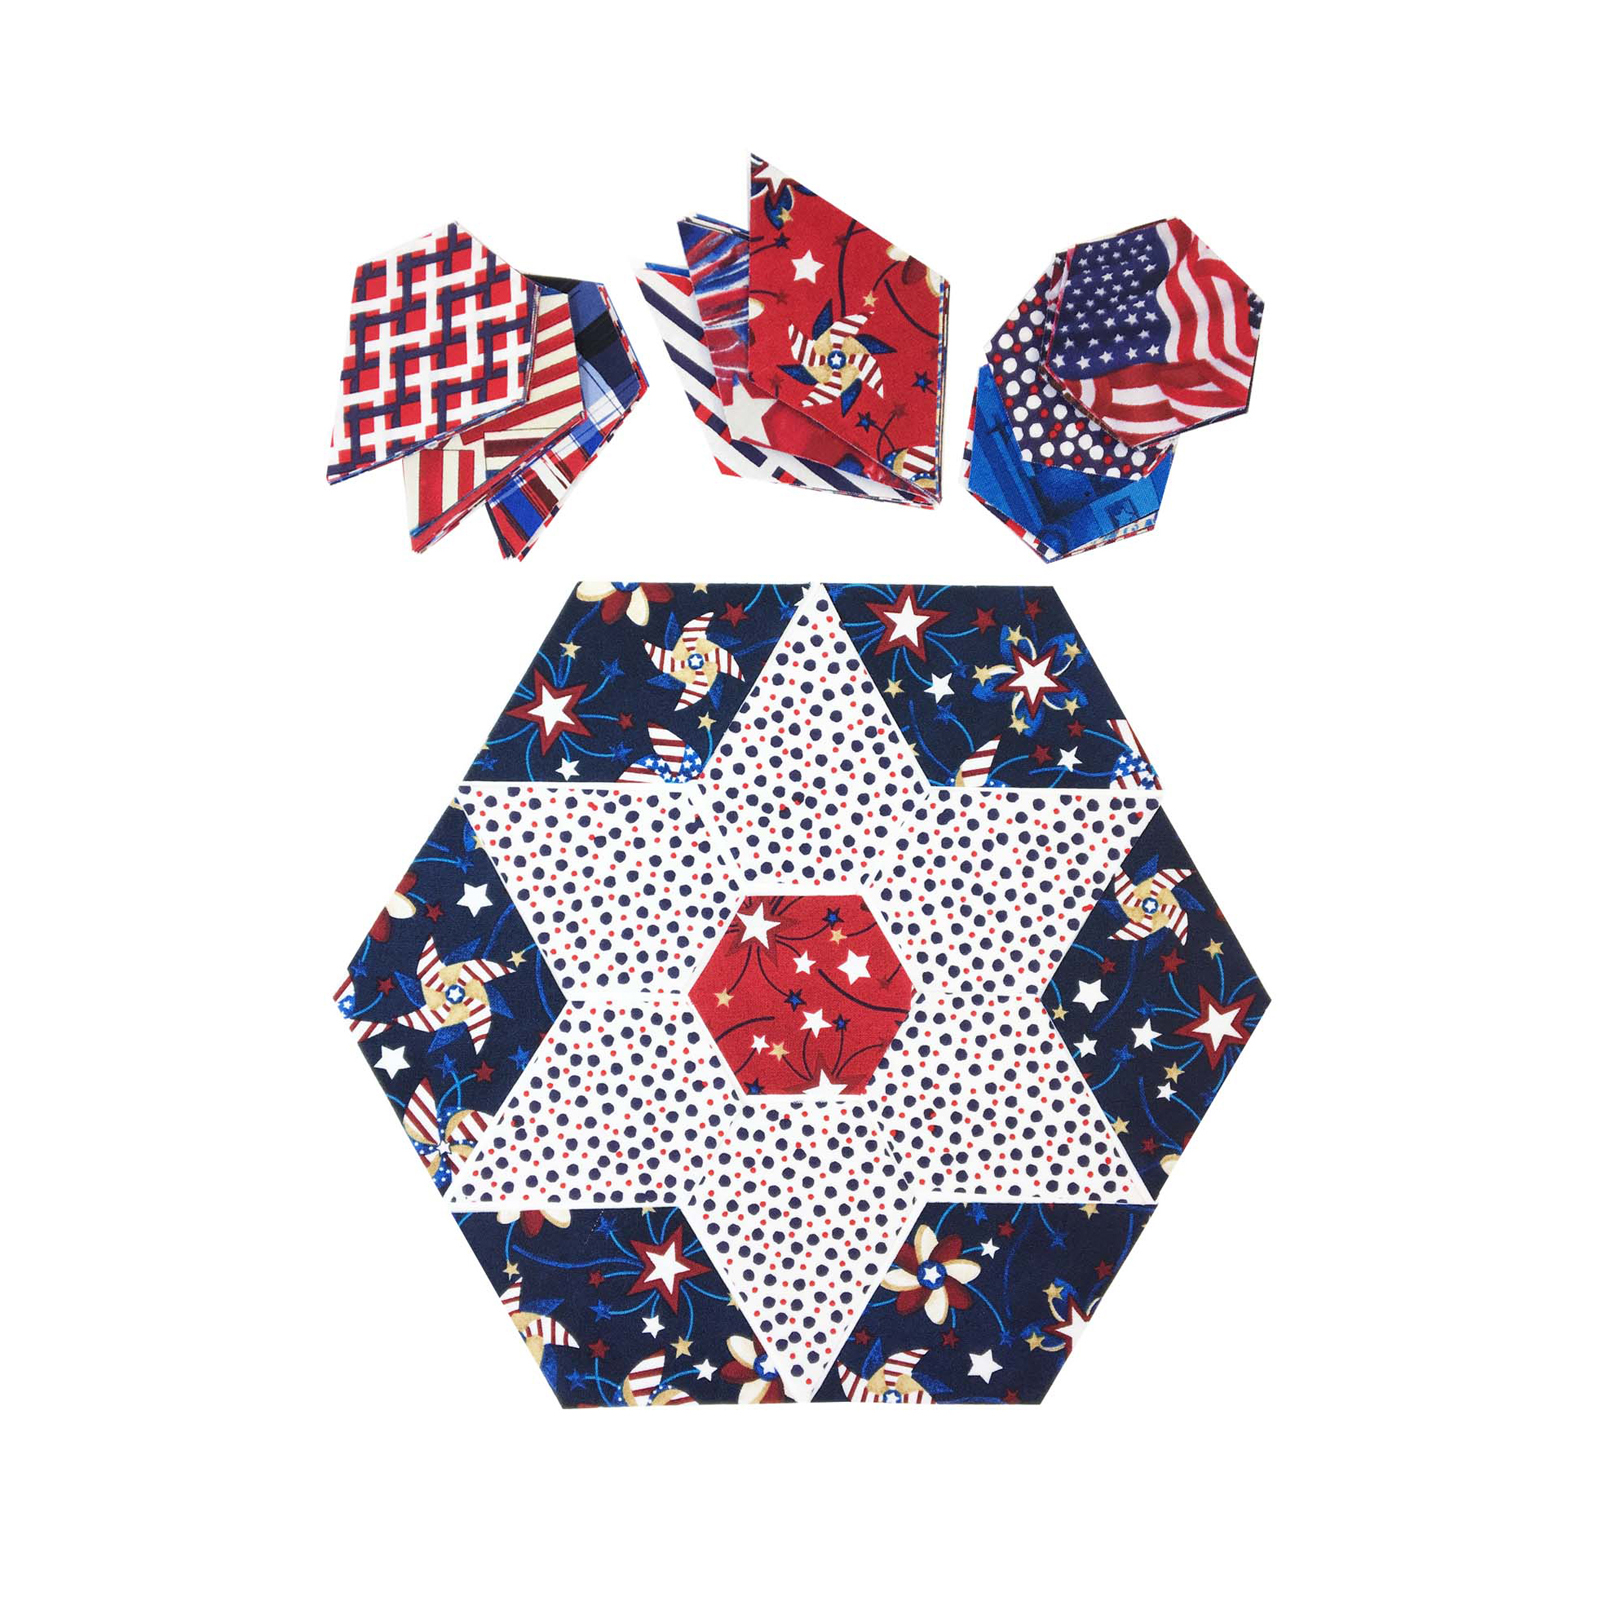 INOpets.com Anything for Pets Parents & Their Pets Fabric.com Patriotic Jewel Star 32'' Kit Multi - Exclusive